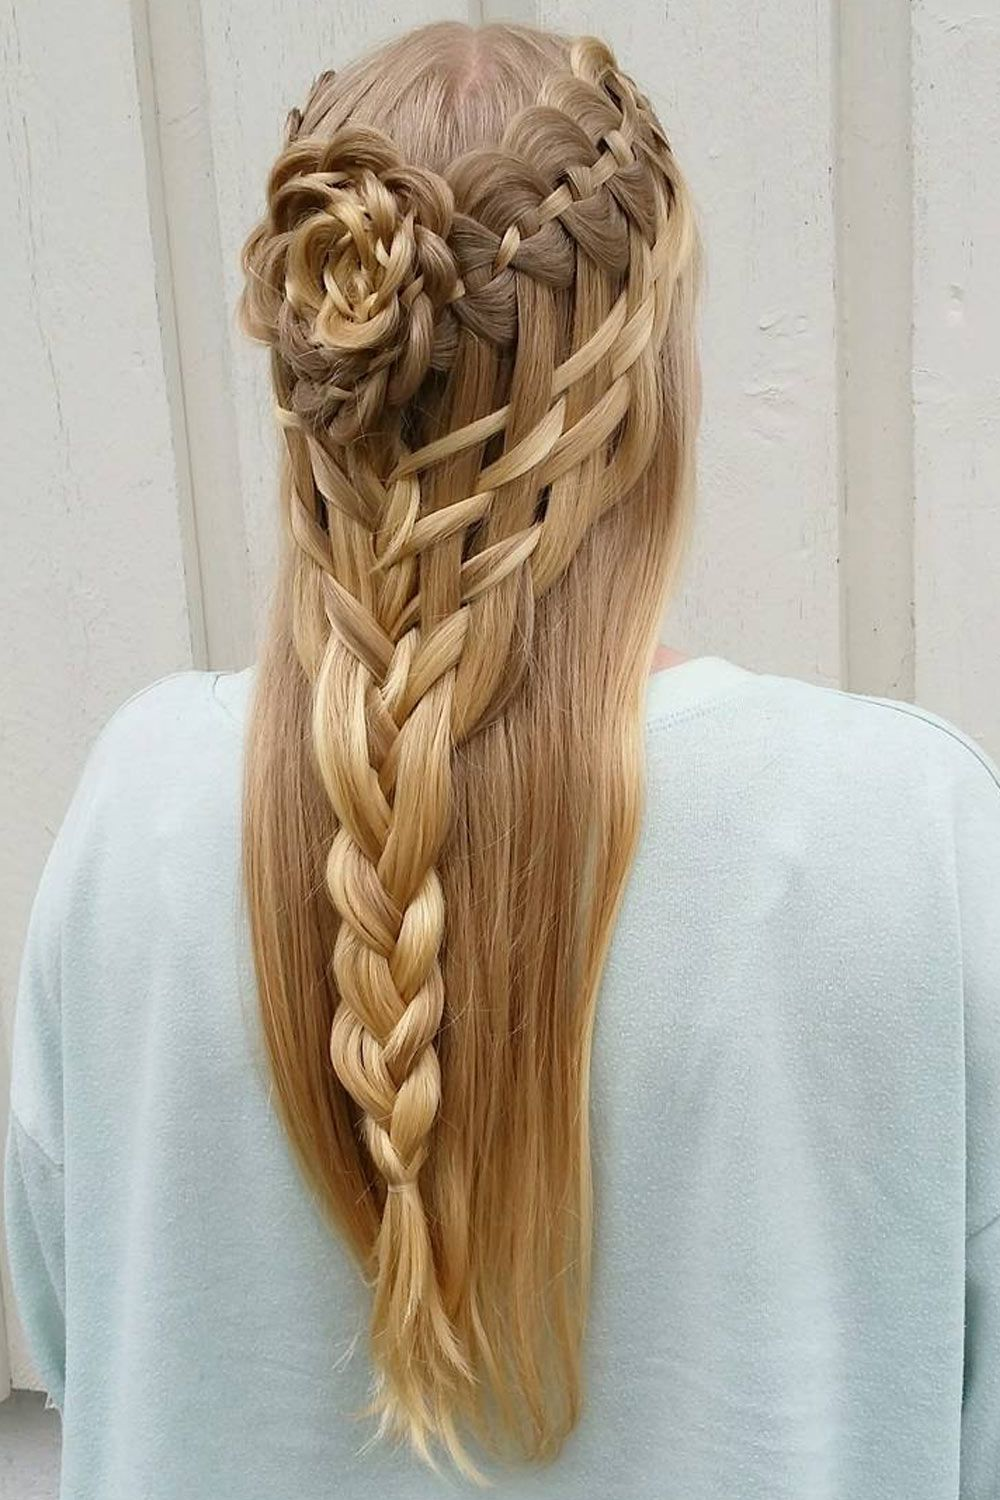 Hairstyle With Ladder Braid And Braided Flower